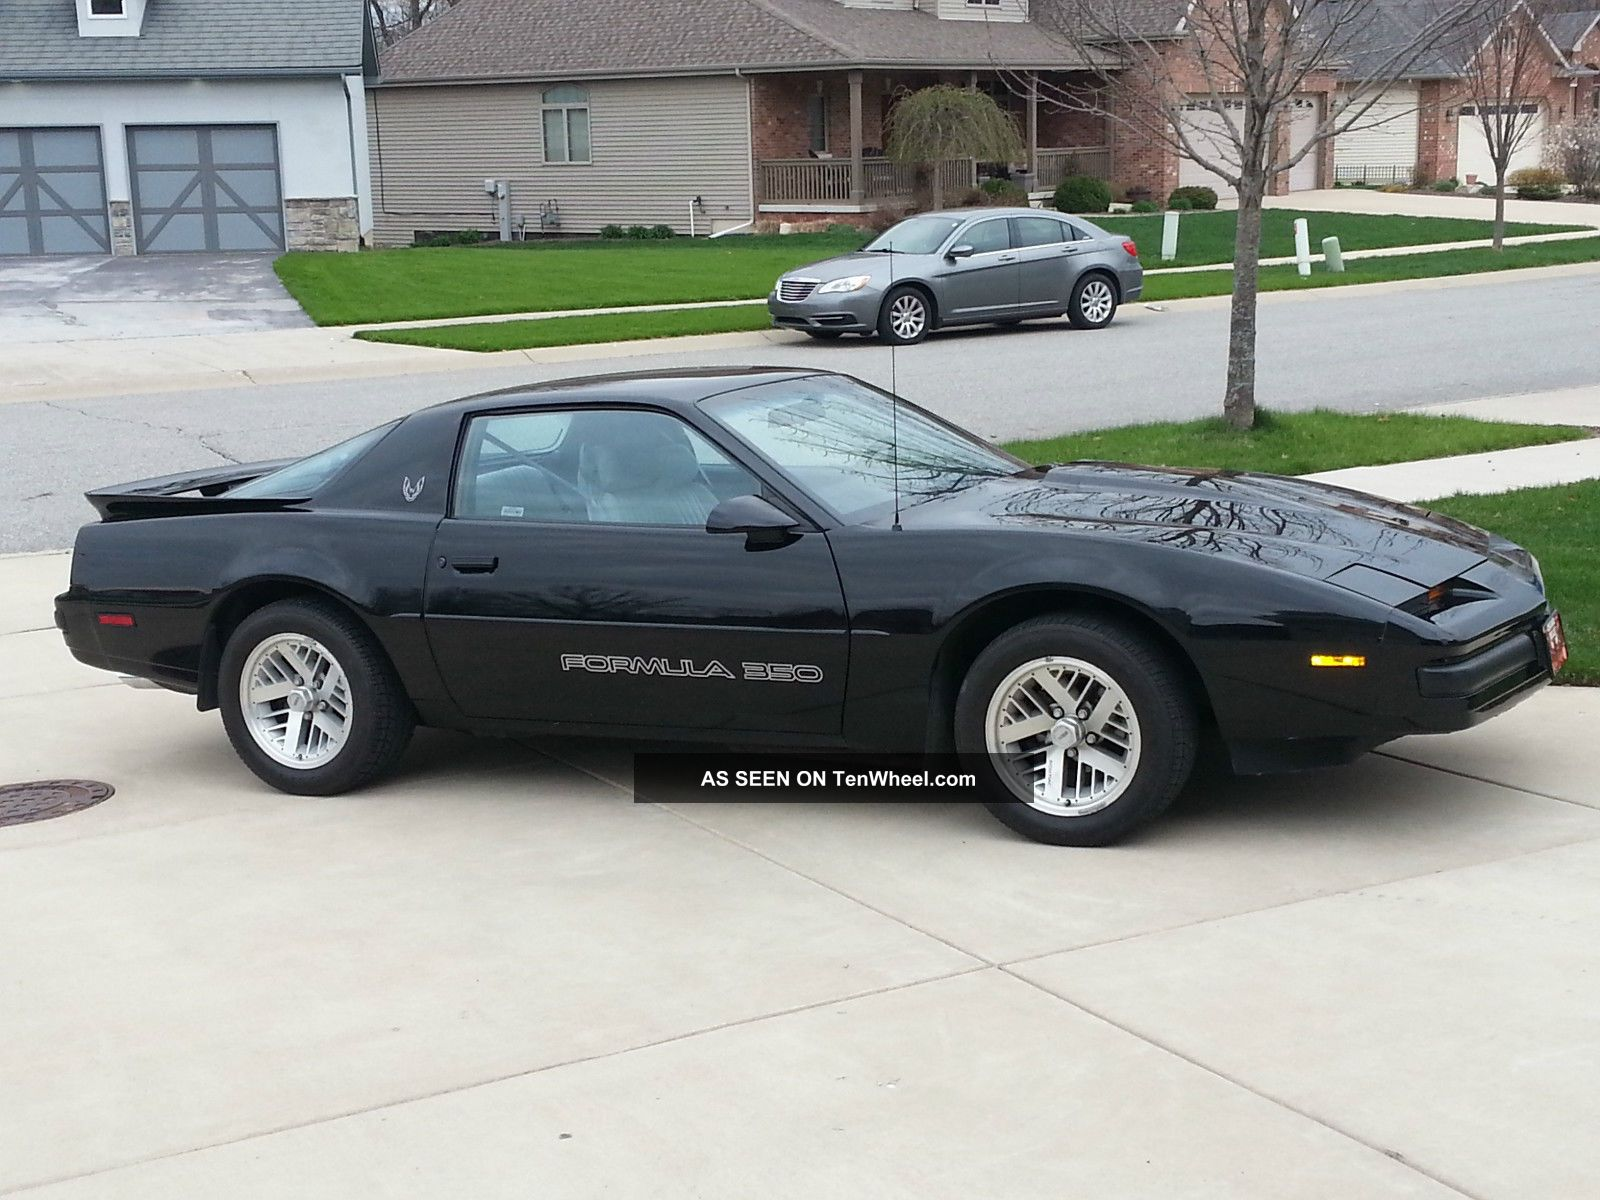 1990 Firebird Formula 350 5.  7l V8 Firebird photo